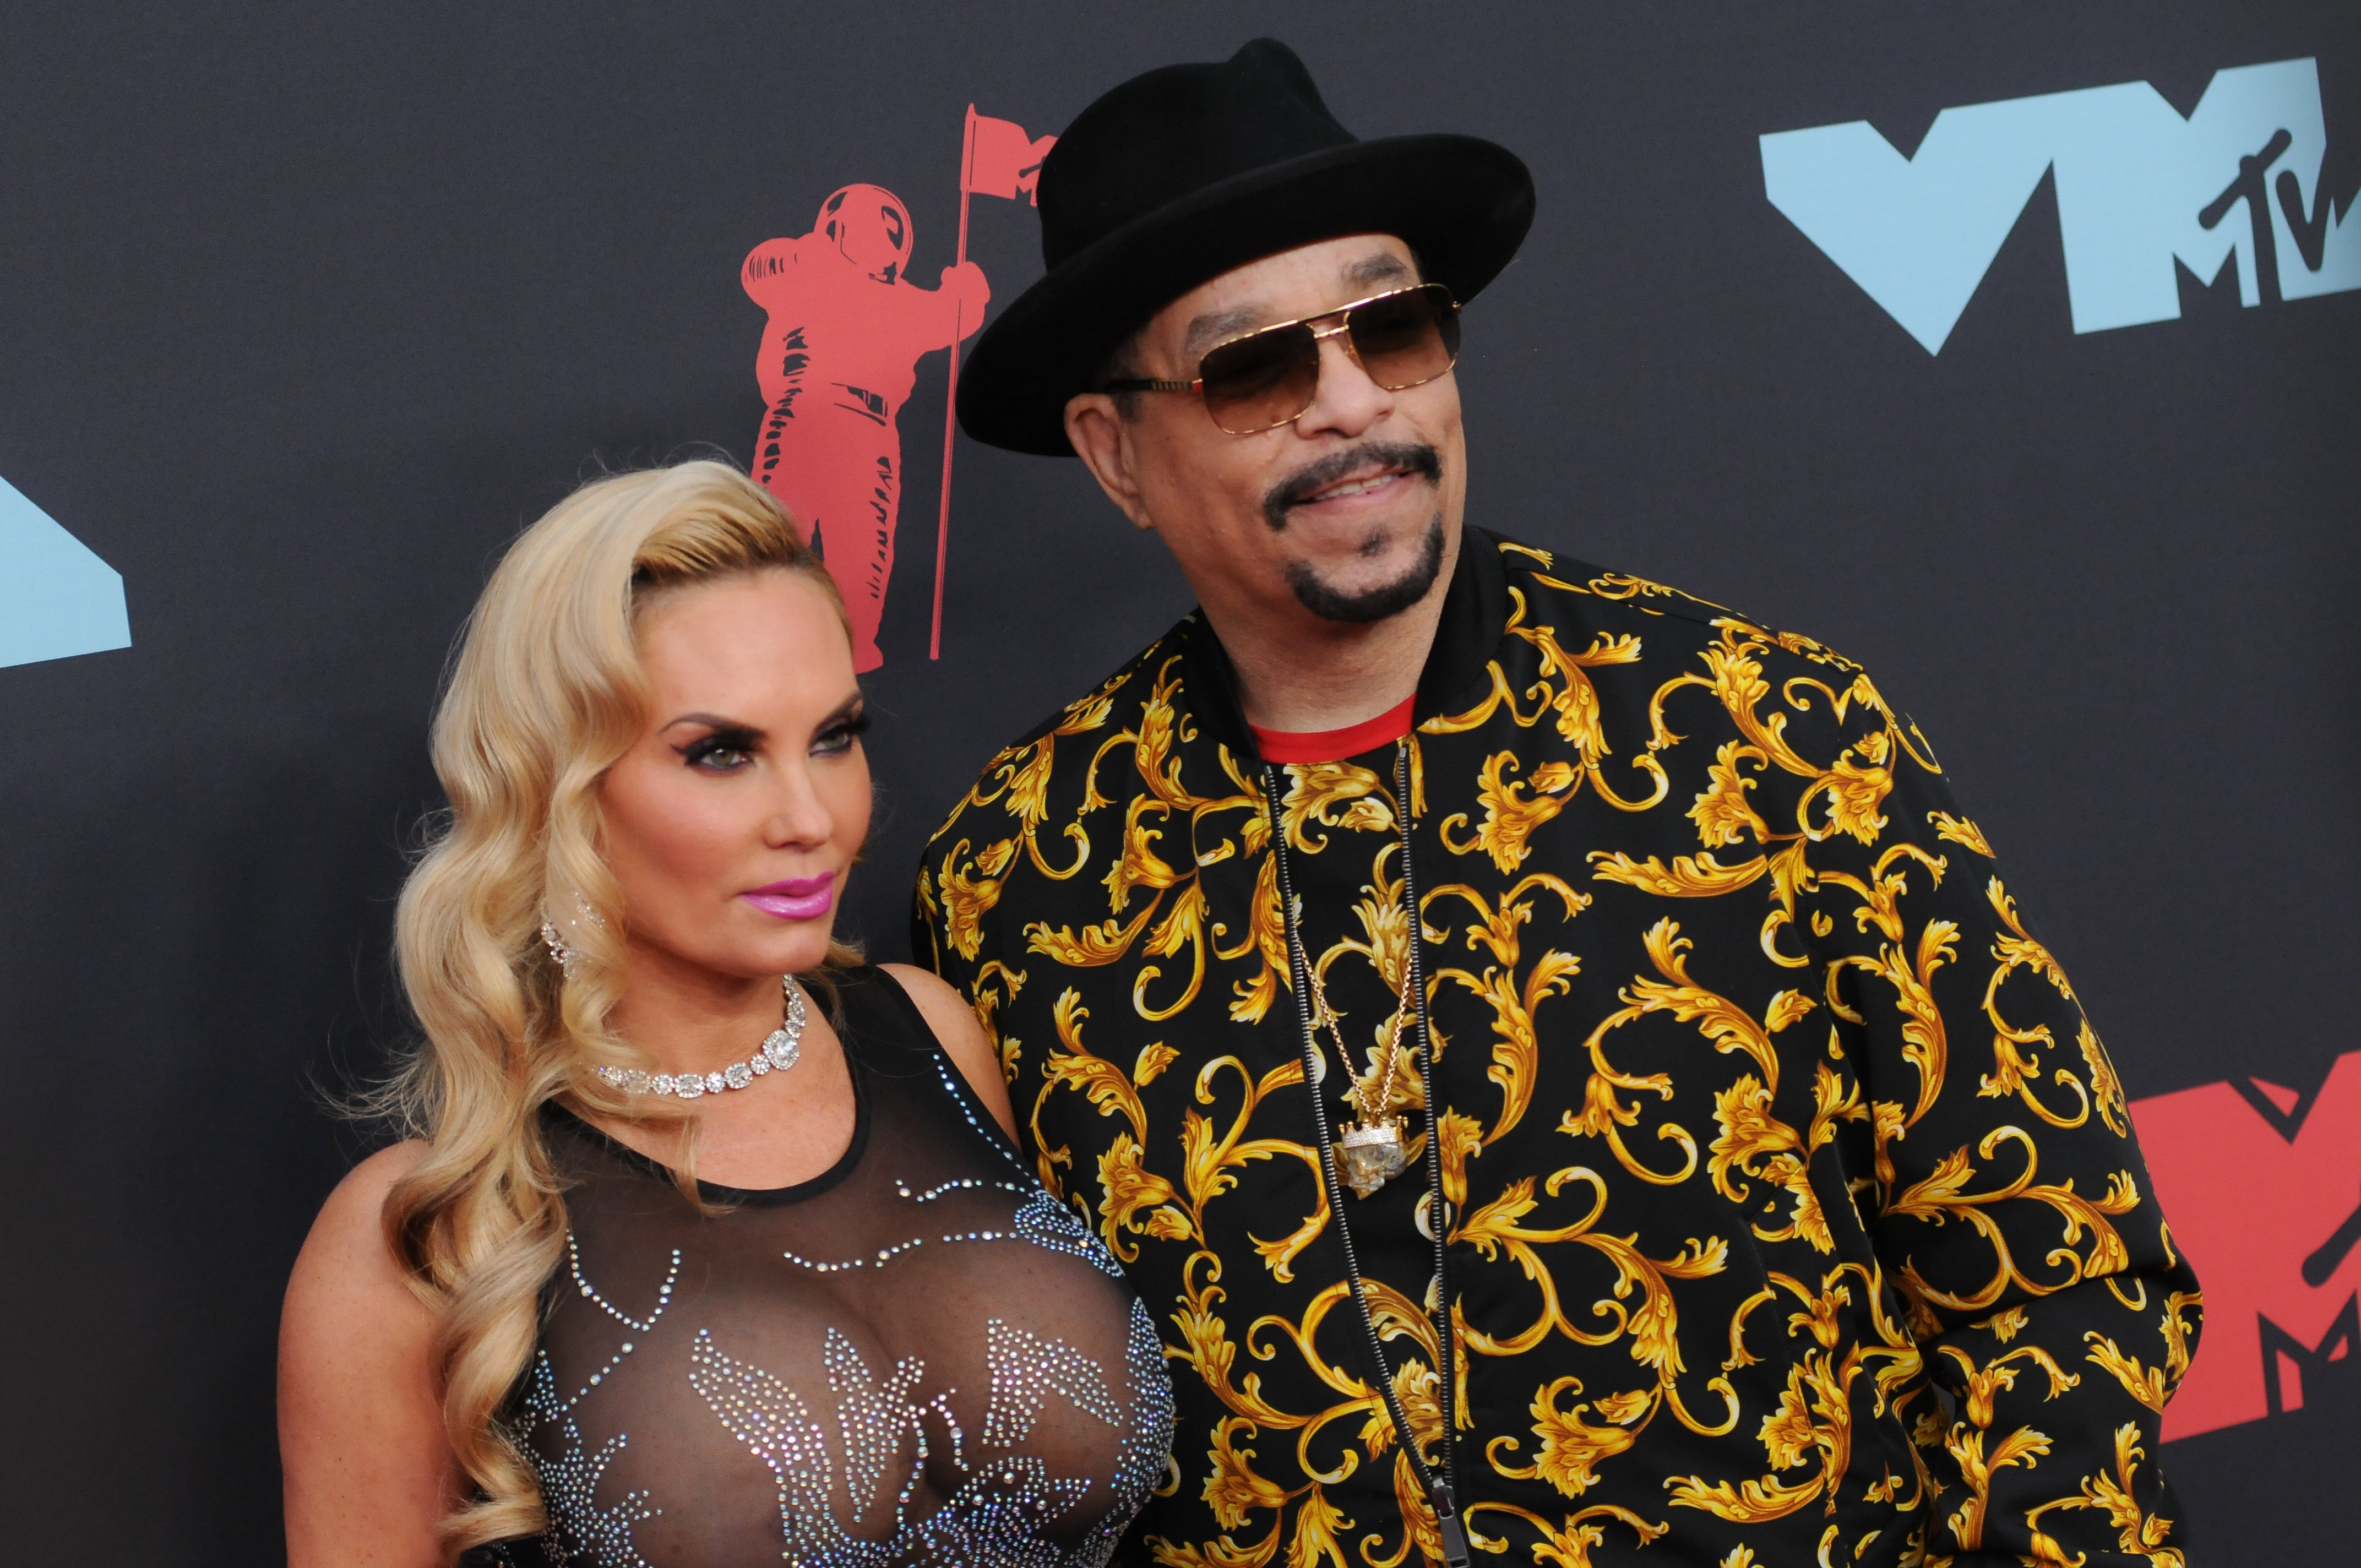 Coco Austin and Ice-T at the 2019 MTV Video Music Video Awards held at the Prudential Center in Newark, NJ.|Source: Getty Images